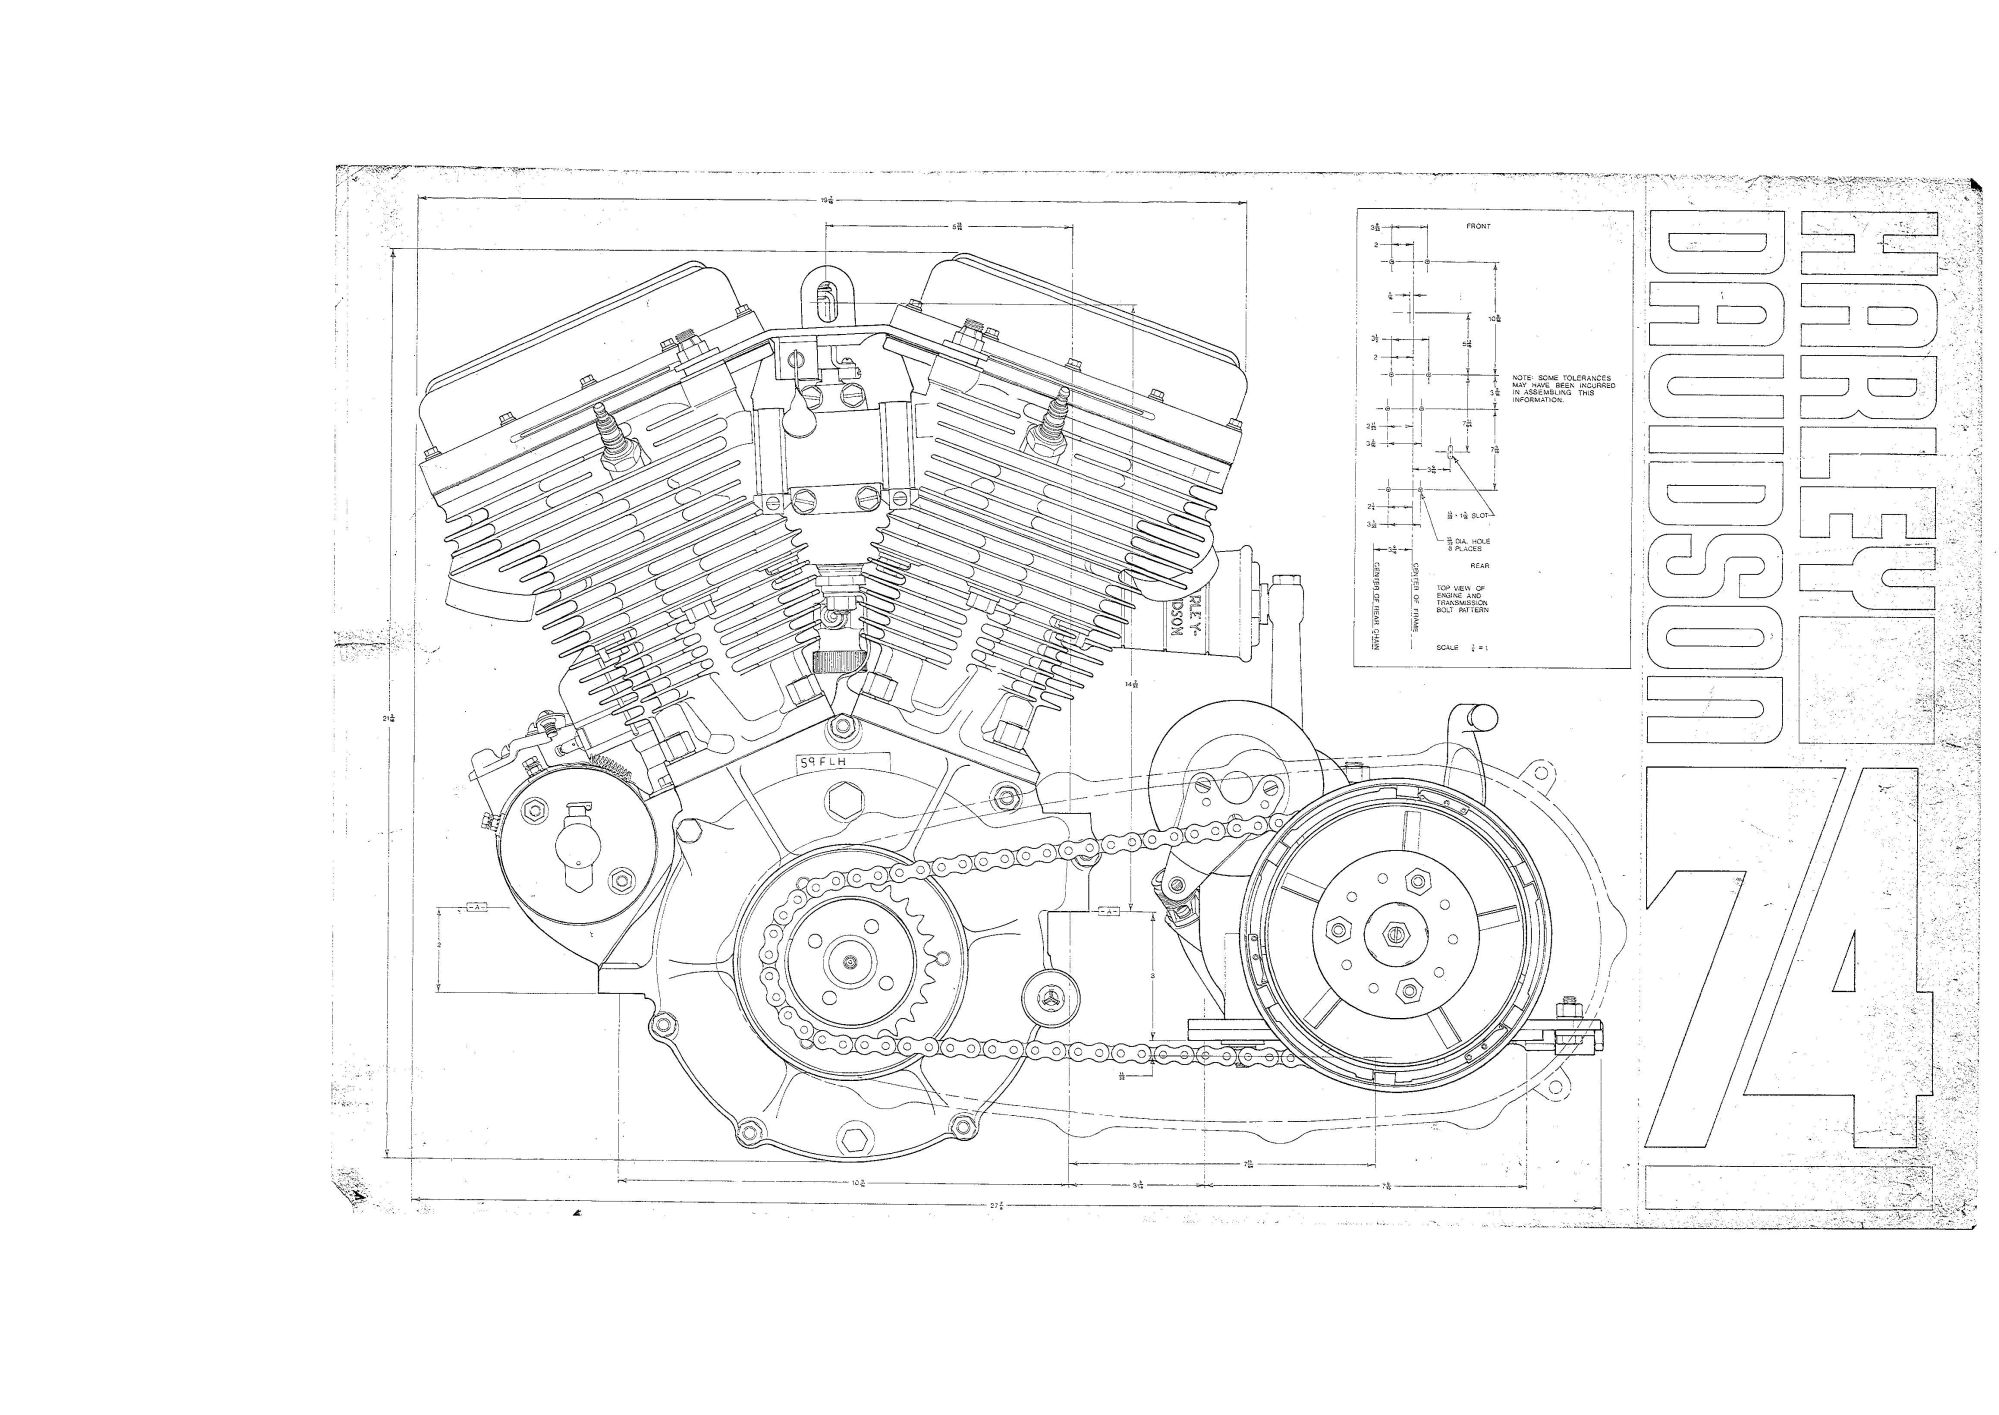 hight resolution of harley davidson 1450 engine diagram harley davidson 1200